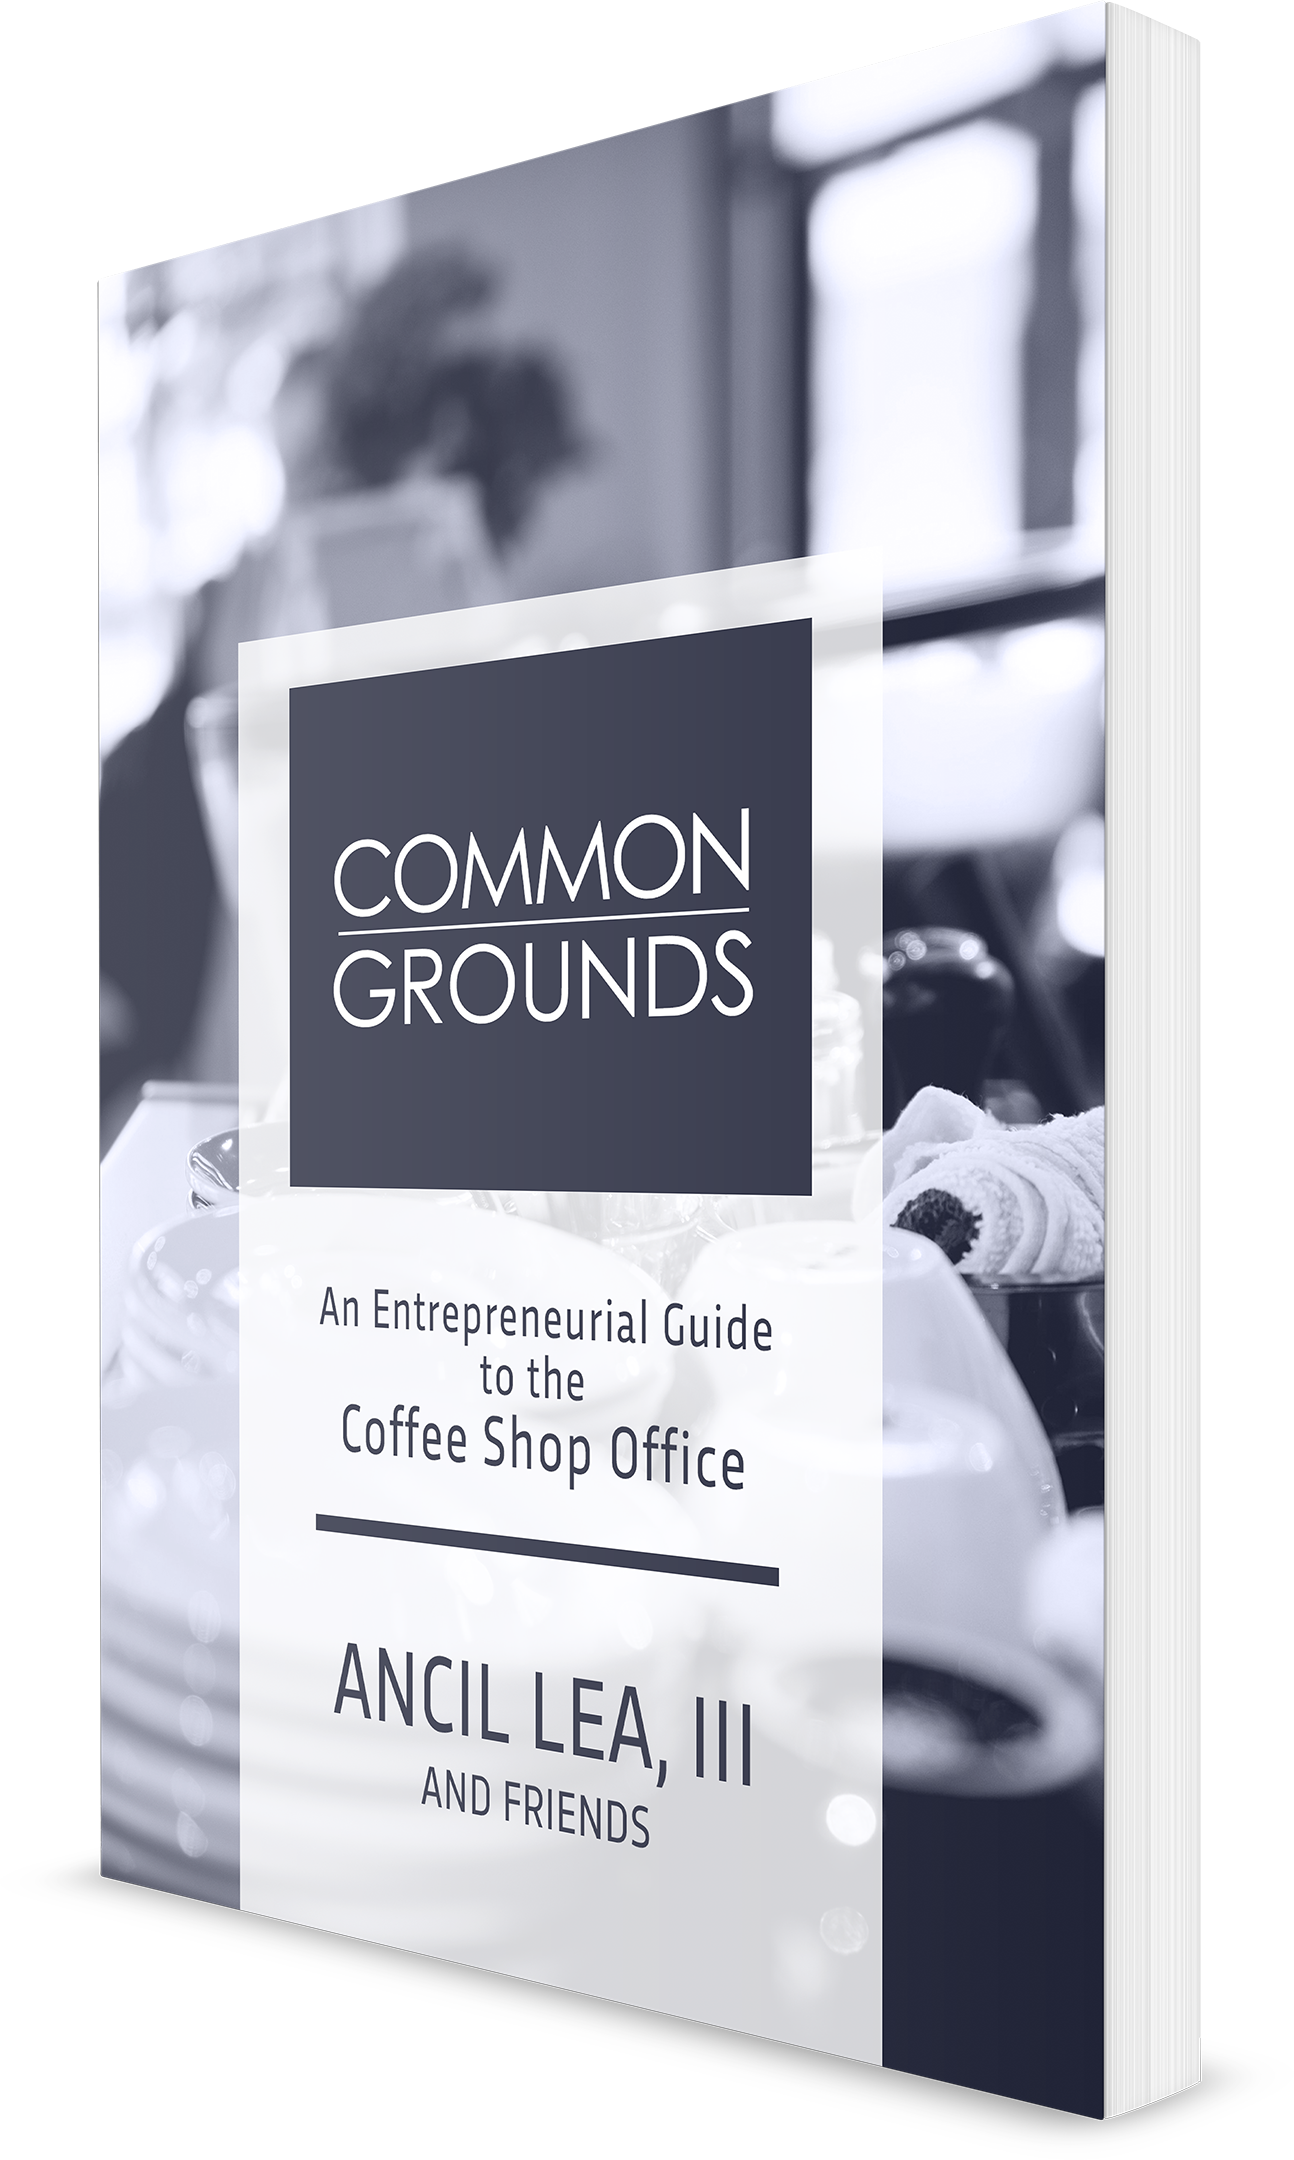 Common Grounds Book by Ancil Lea III